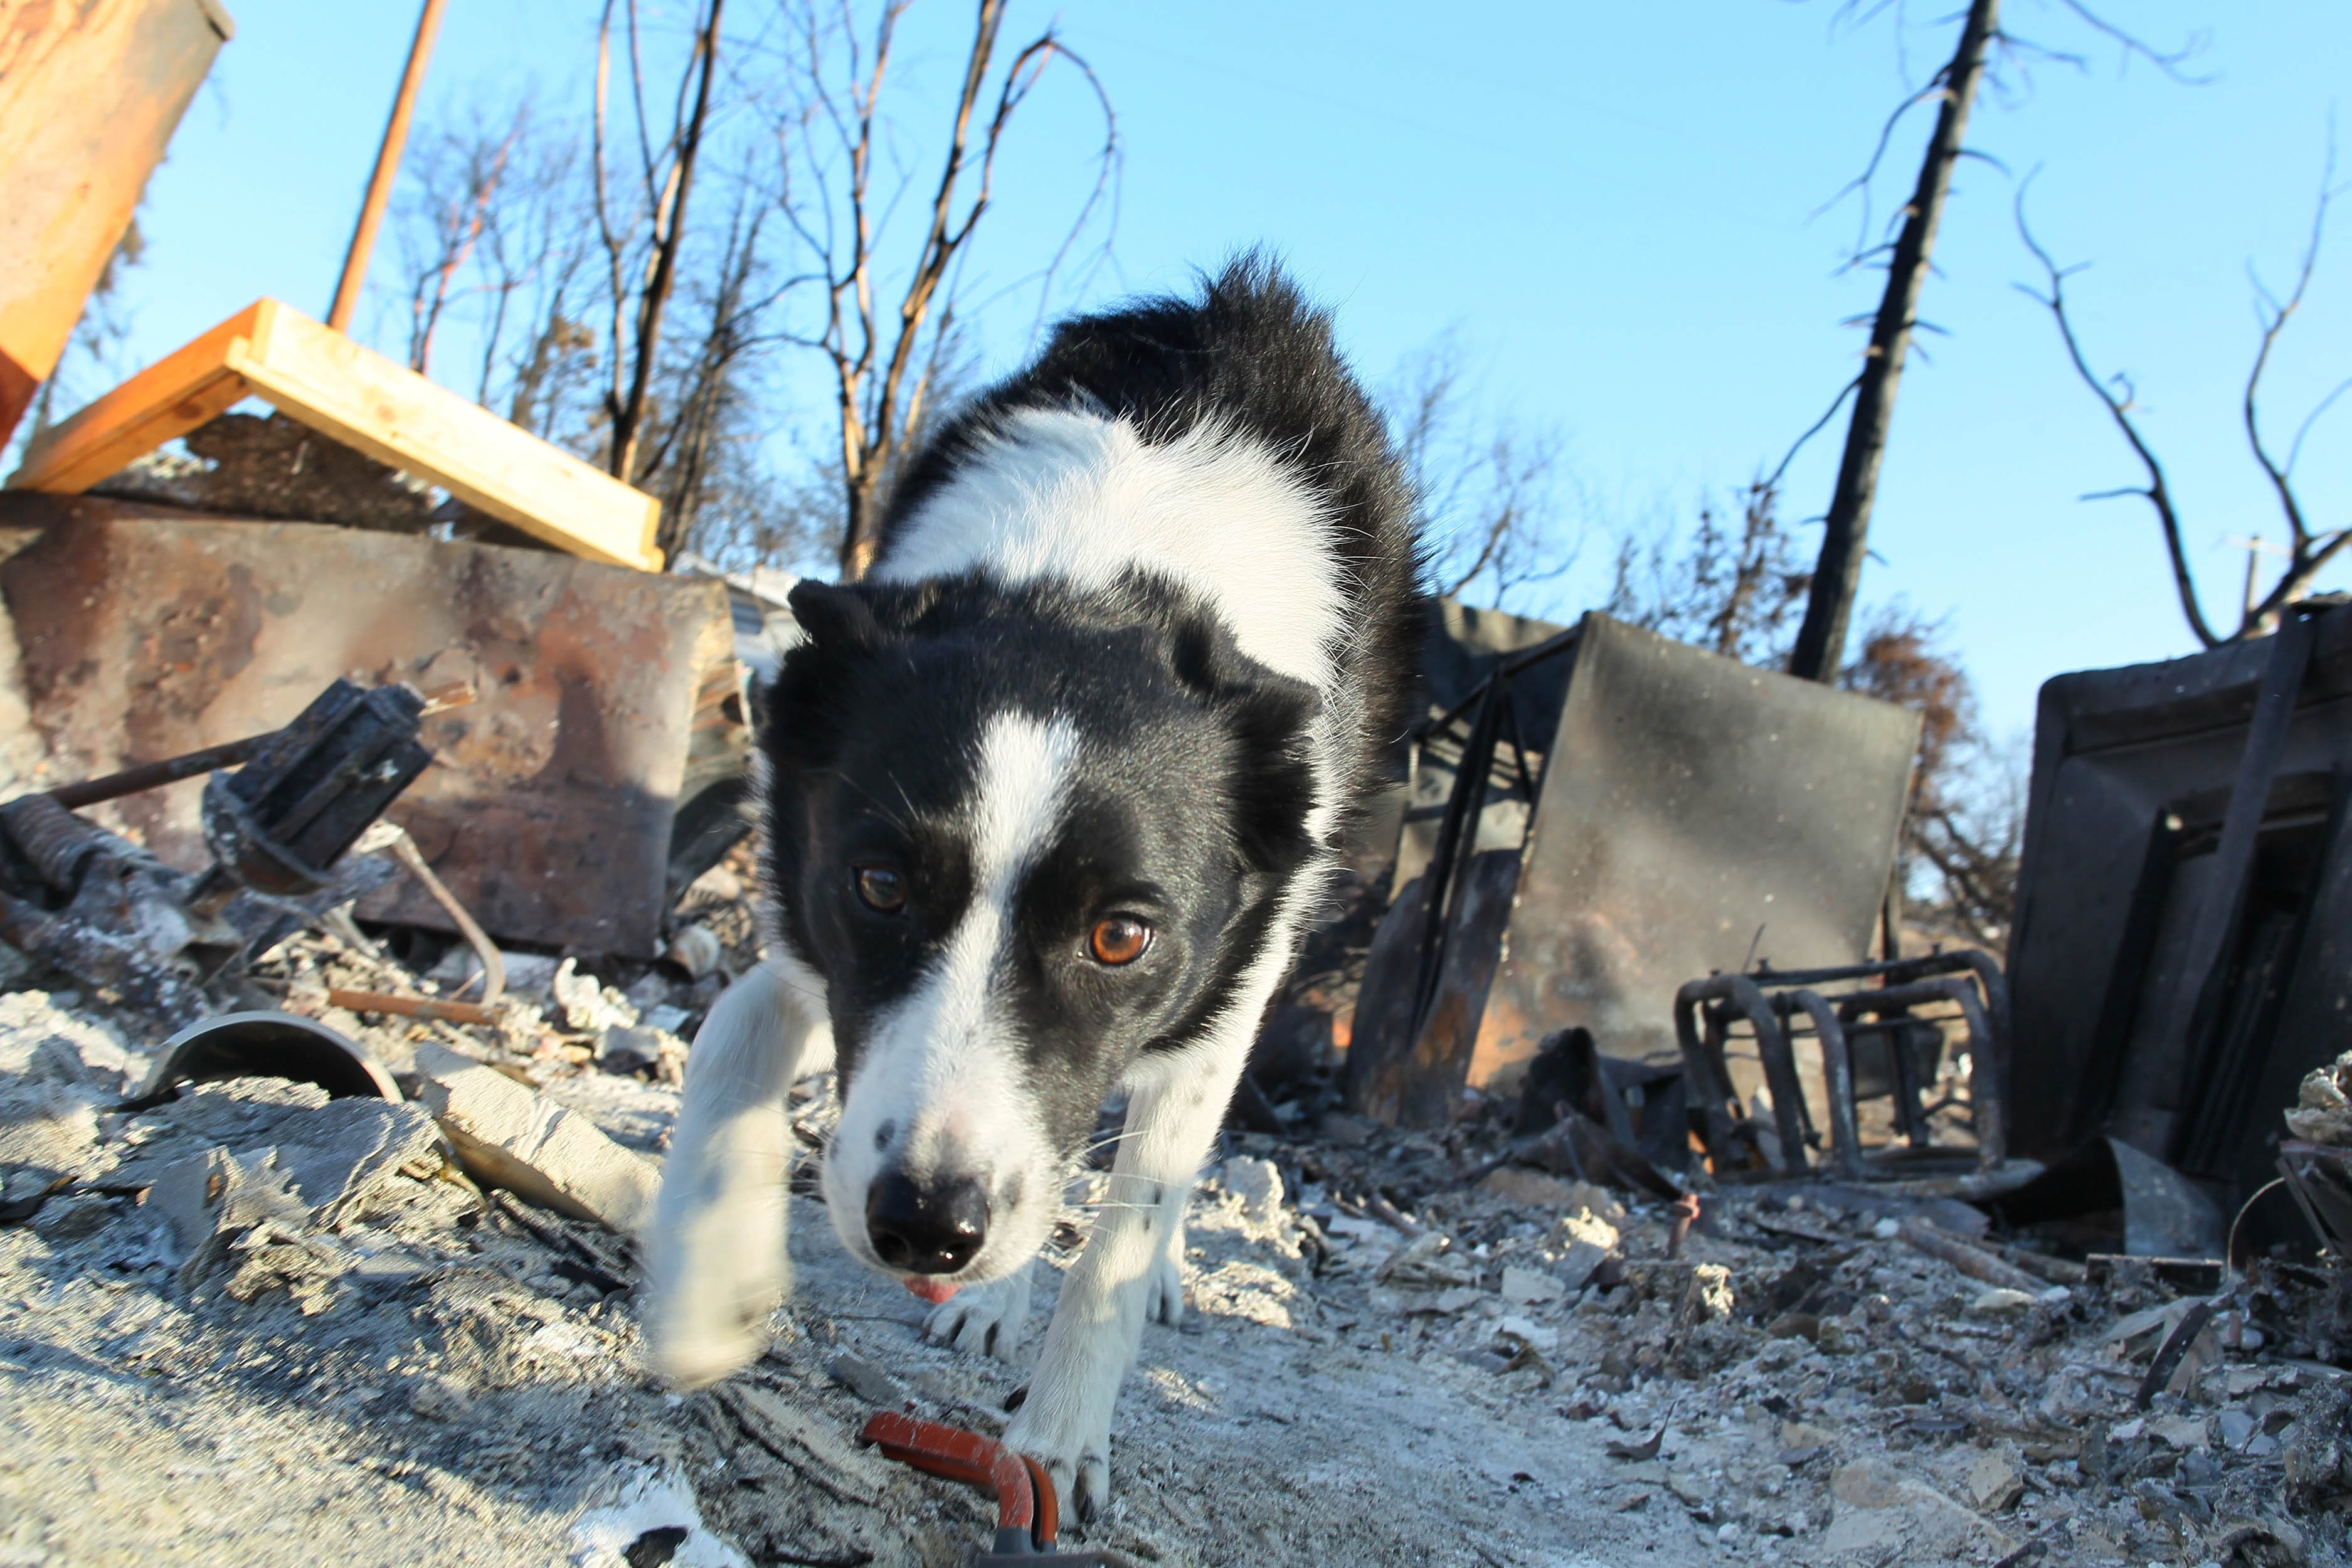 Piper, a cremain-sniffing border collie, walks around Bonnie Martin's property in Keswick on Saturday.